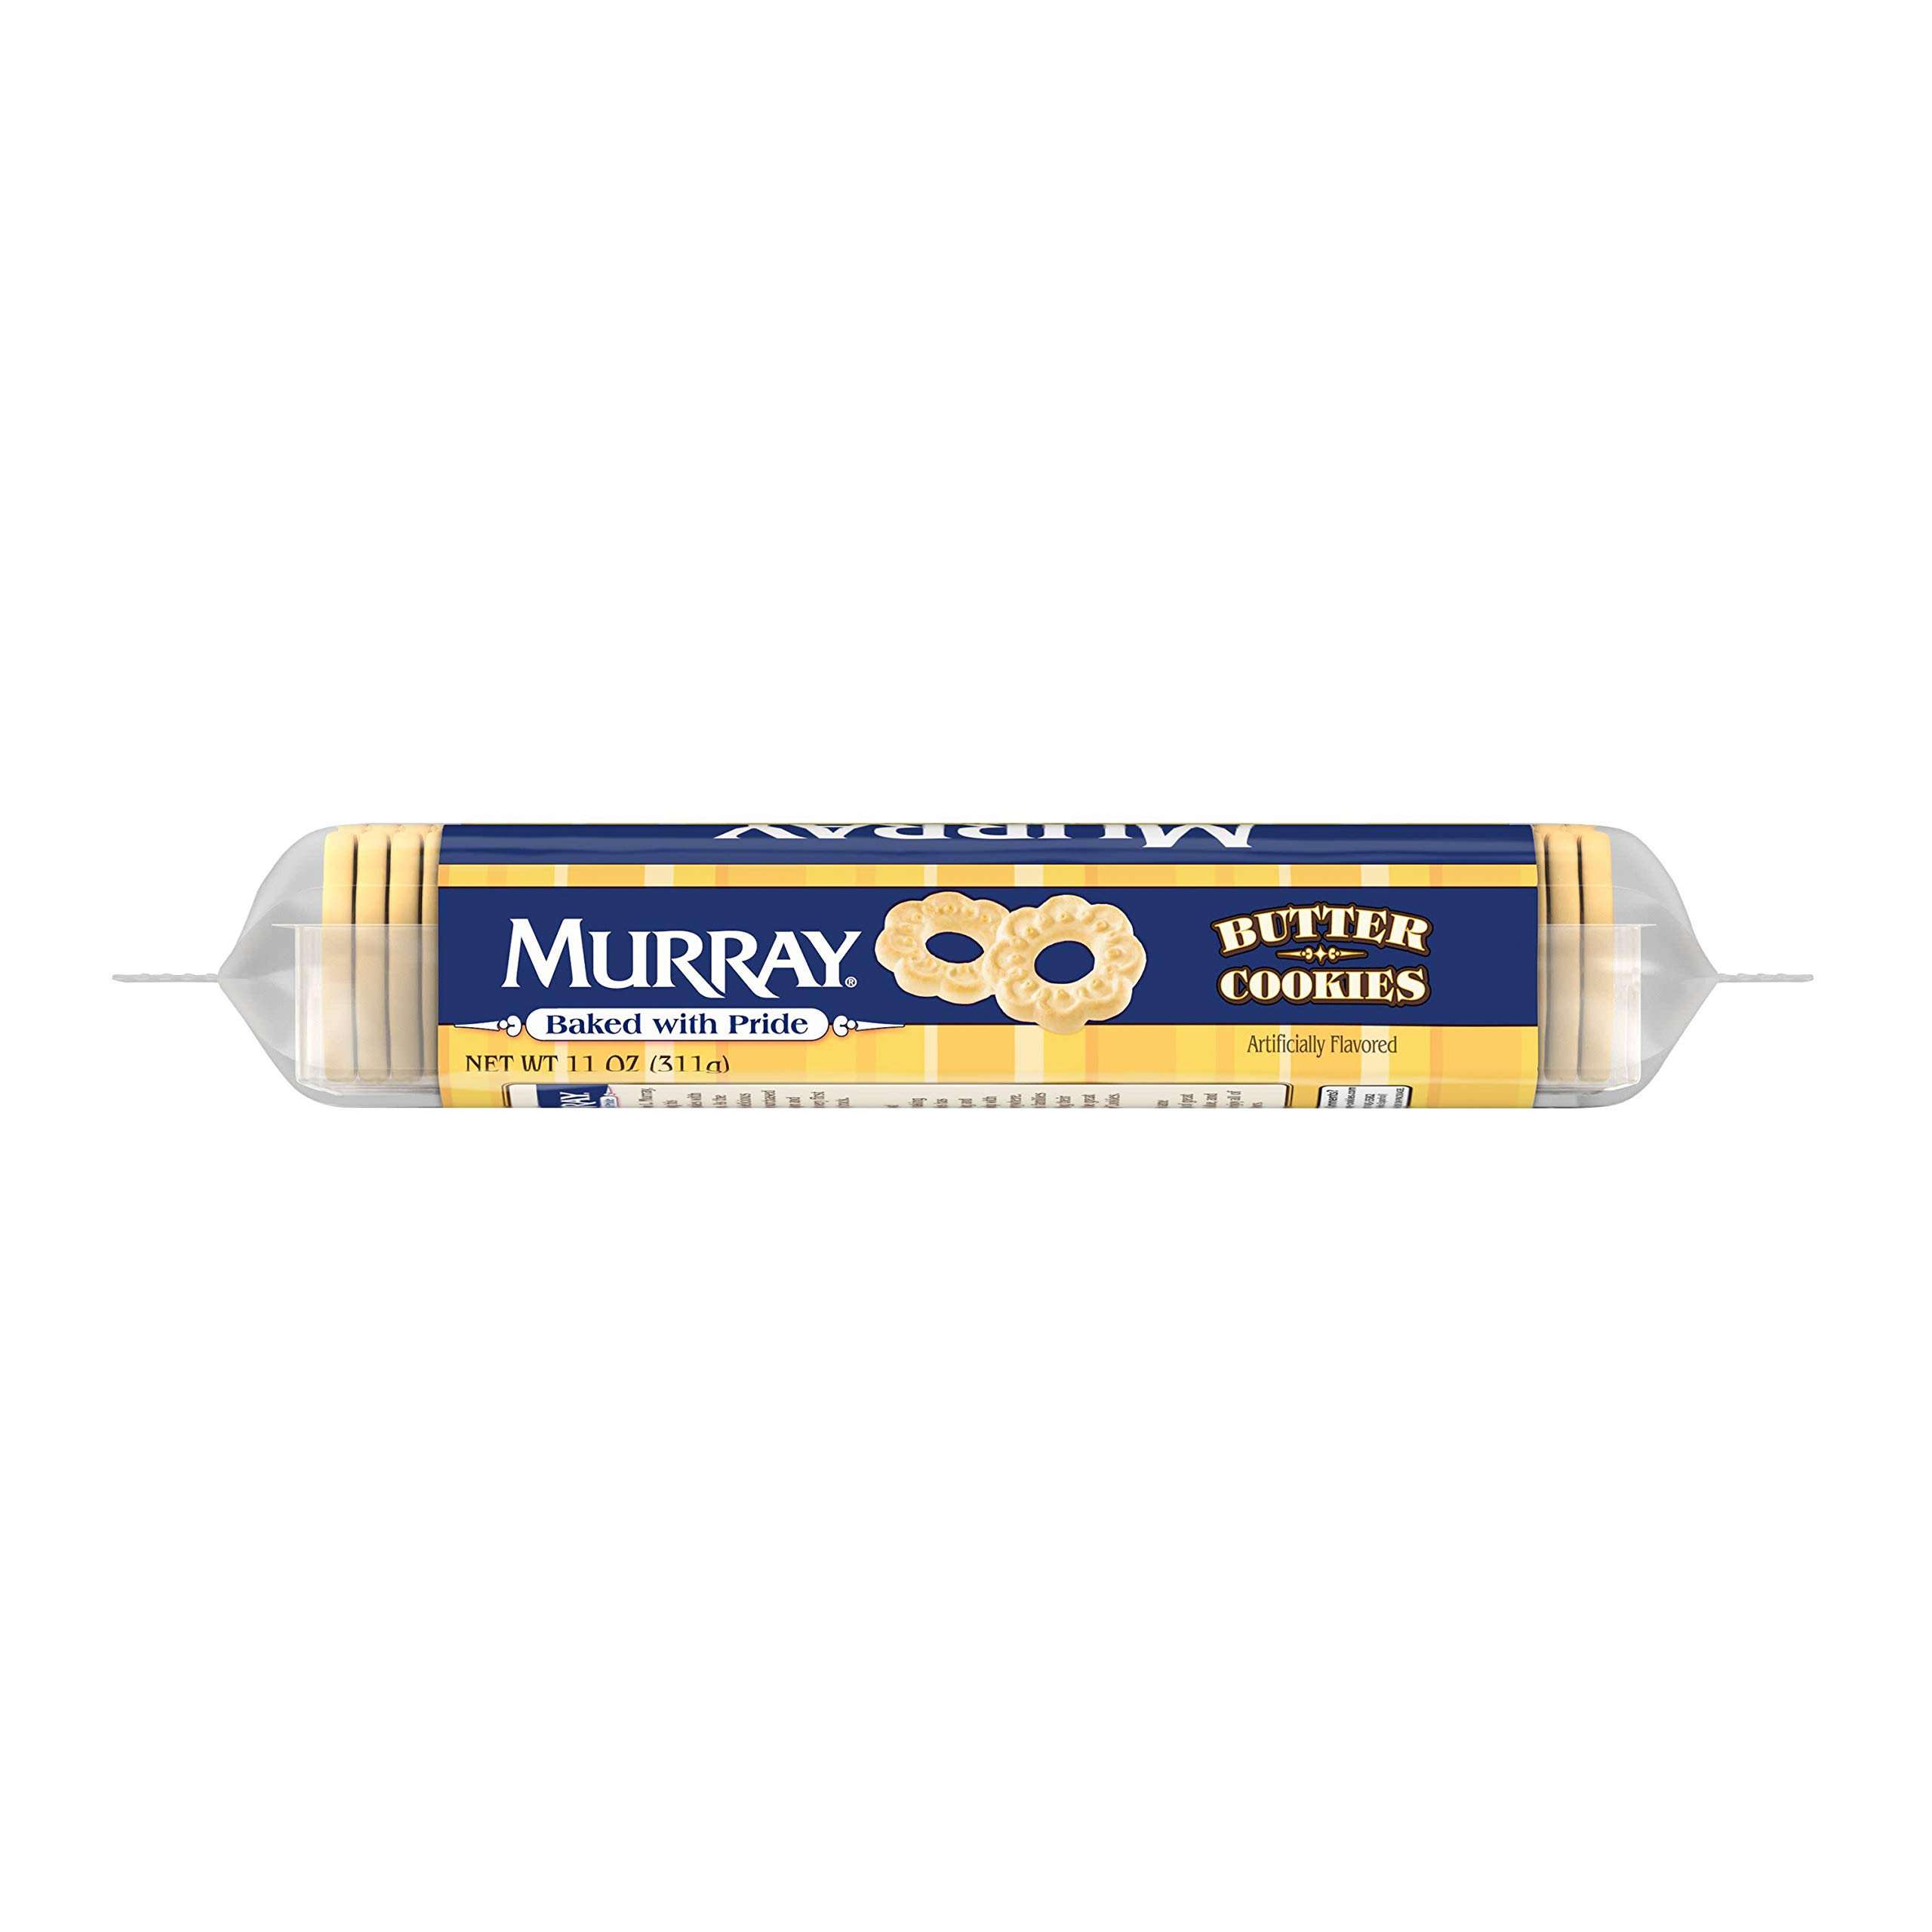 Murray Cookies, Butter, 11 oz Tray by Murray (Image #6)